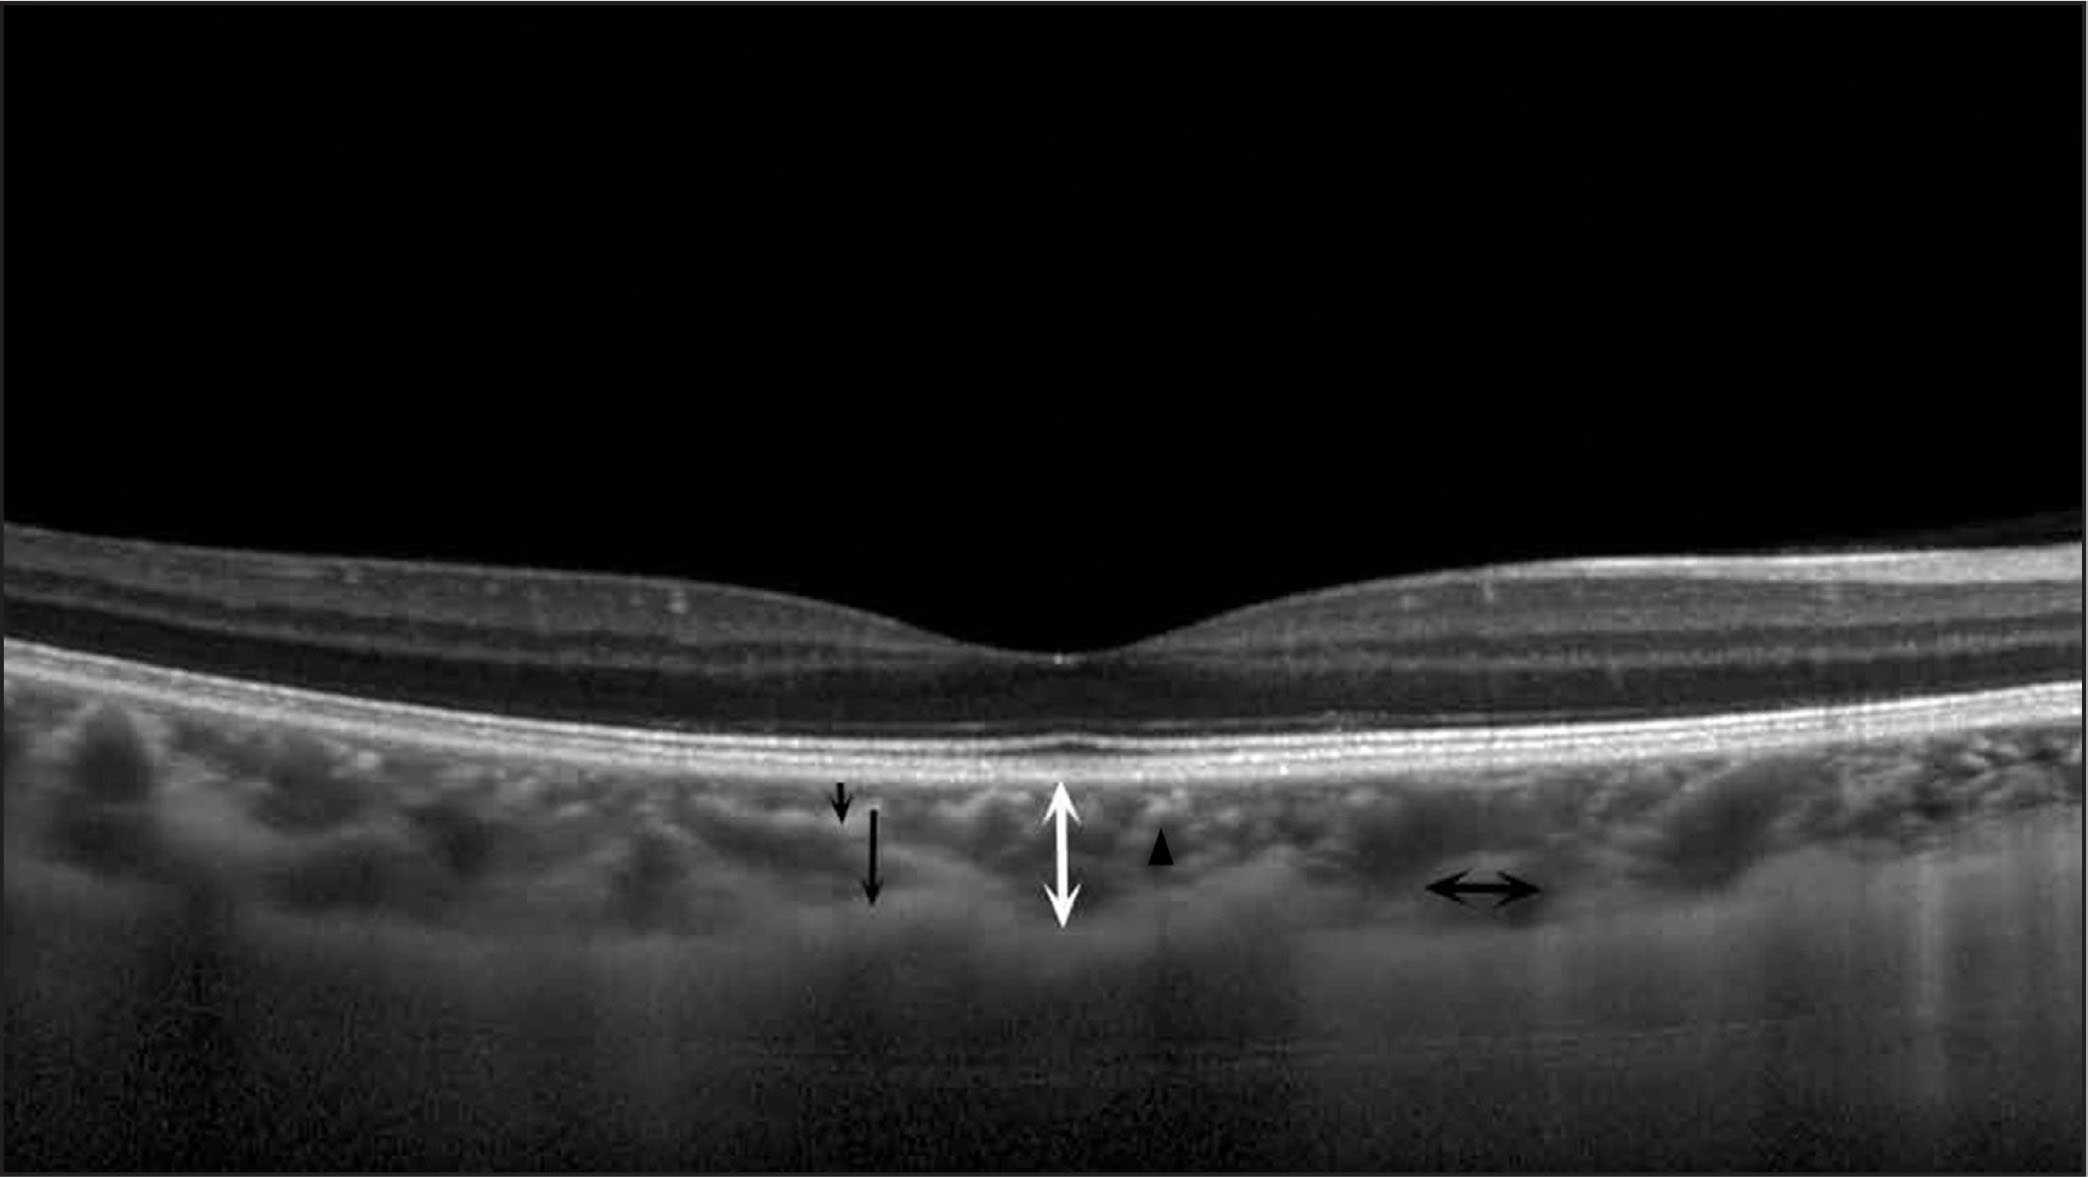 An enhanced depth imaging spectral-domain optical coherence tomography choroidal image of a control participant. There were a number of hyperreflective profiles with hyporeflective cores in Haller's layer (long black arrows) and Sattler's layer (short black arrows). The black double-headed arrow shows the diameter of the vessels in Haller's layer, and the black triangle shows the hyperreflective profile with hyporeflective core in Sattler's layer.